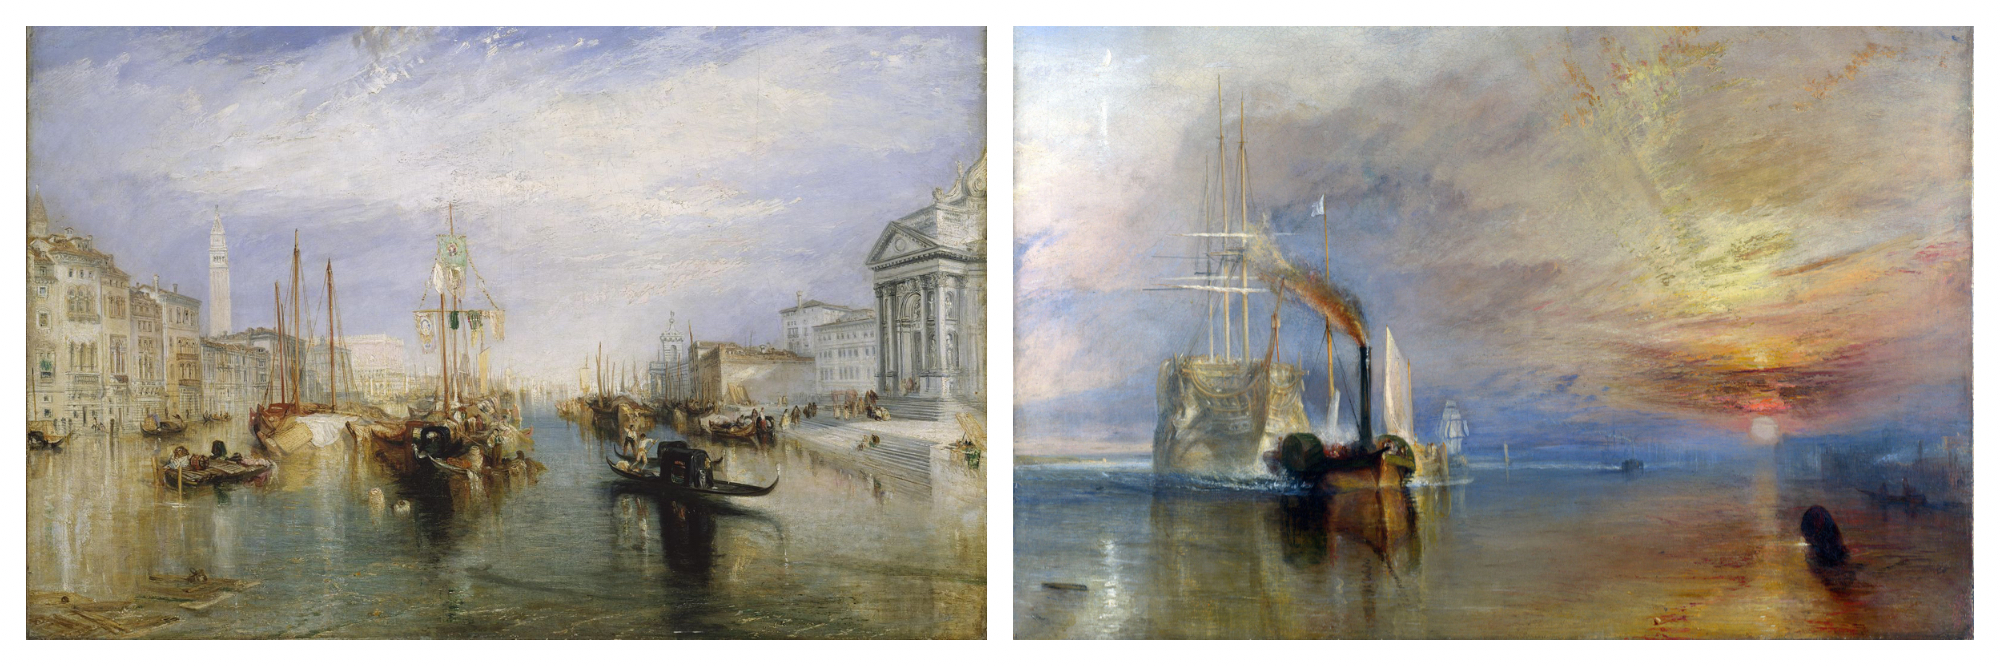 Atmospheric paintings of Turner are must-sees this season in Paris.